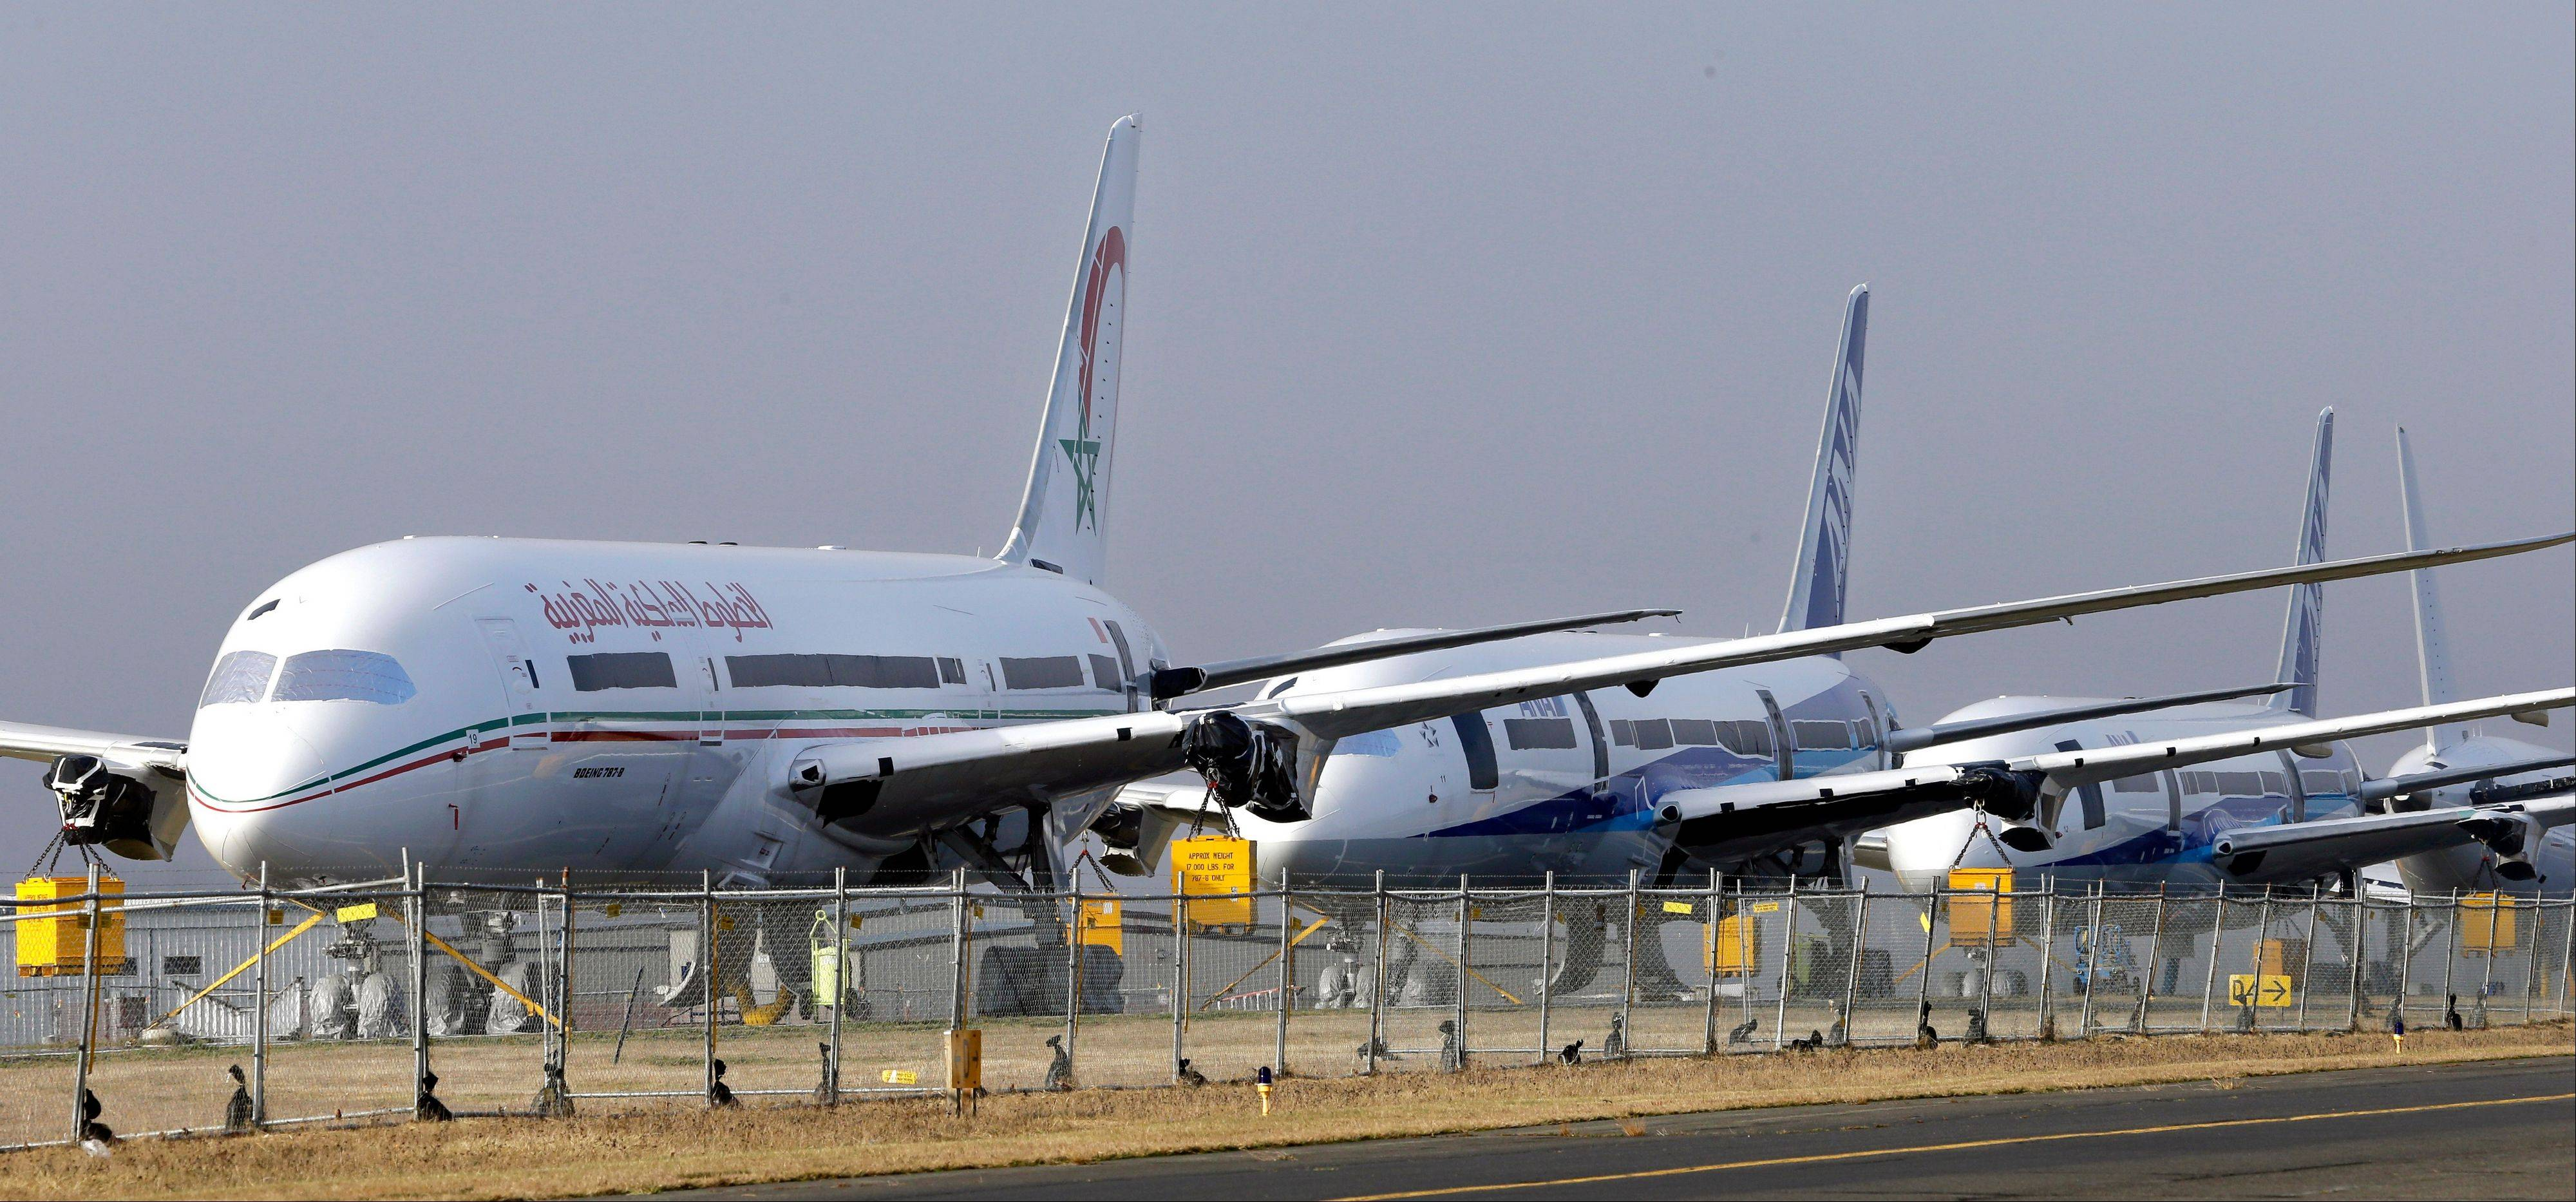 Boeing 787 incidents prompt first U.S. grounding in 34 years